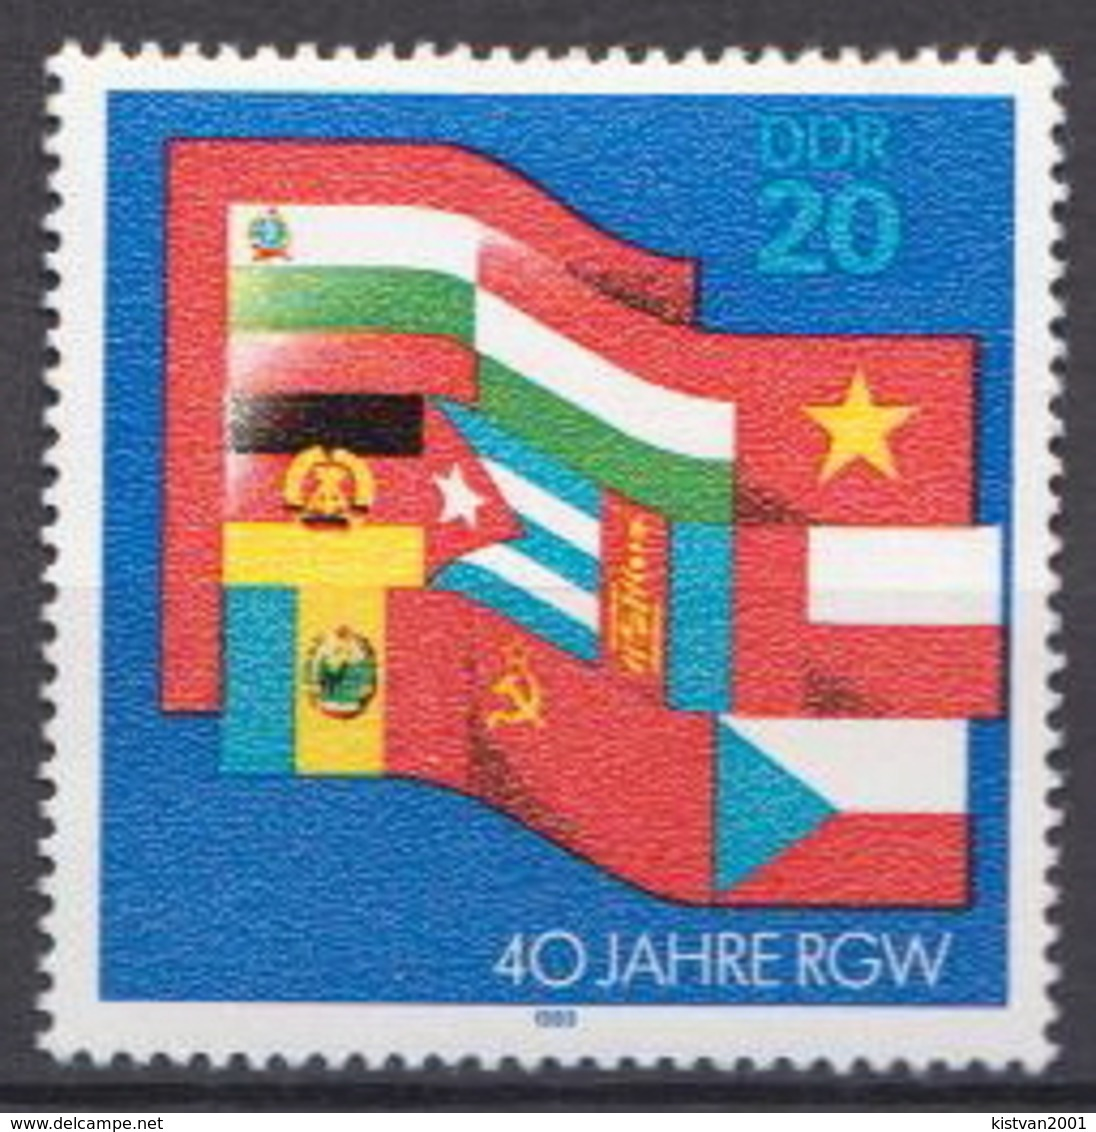 Germany DDR MNH Stamp - Stamps